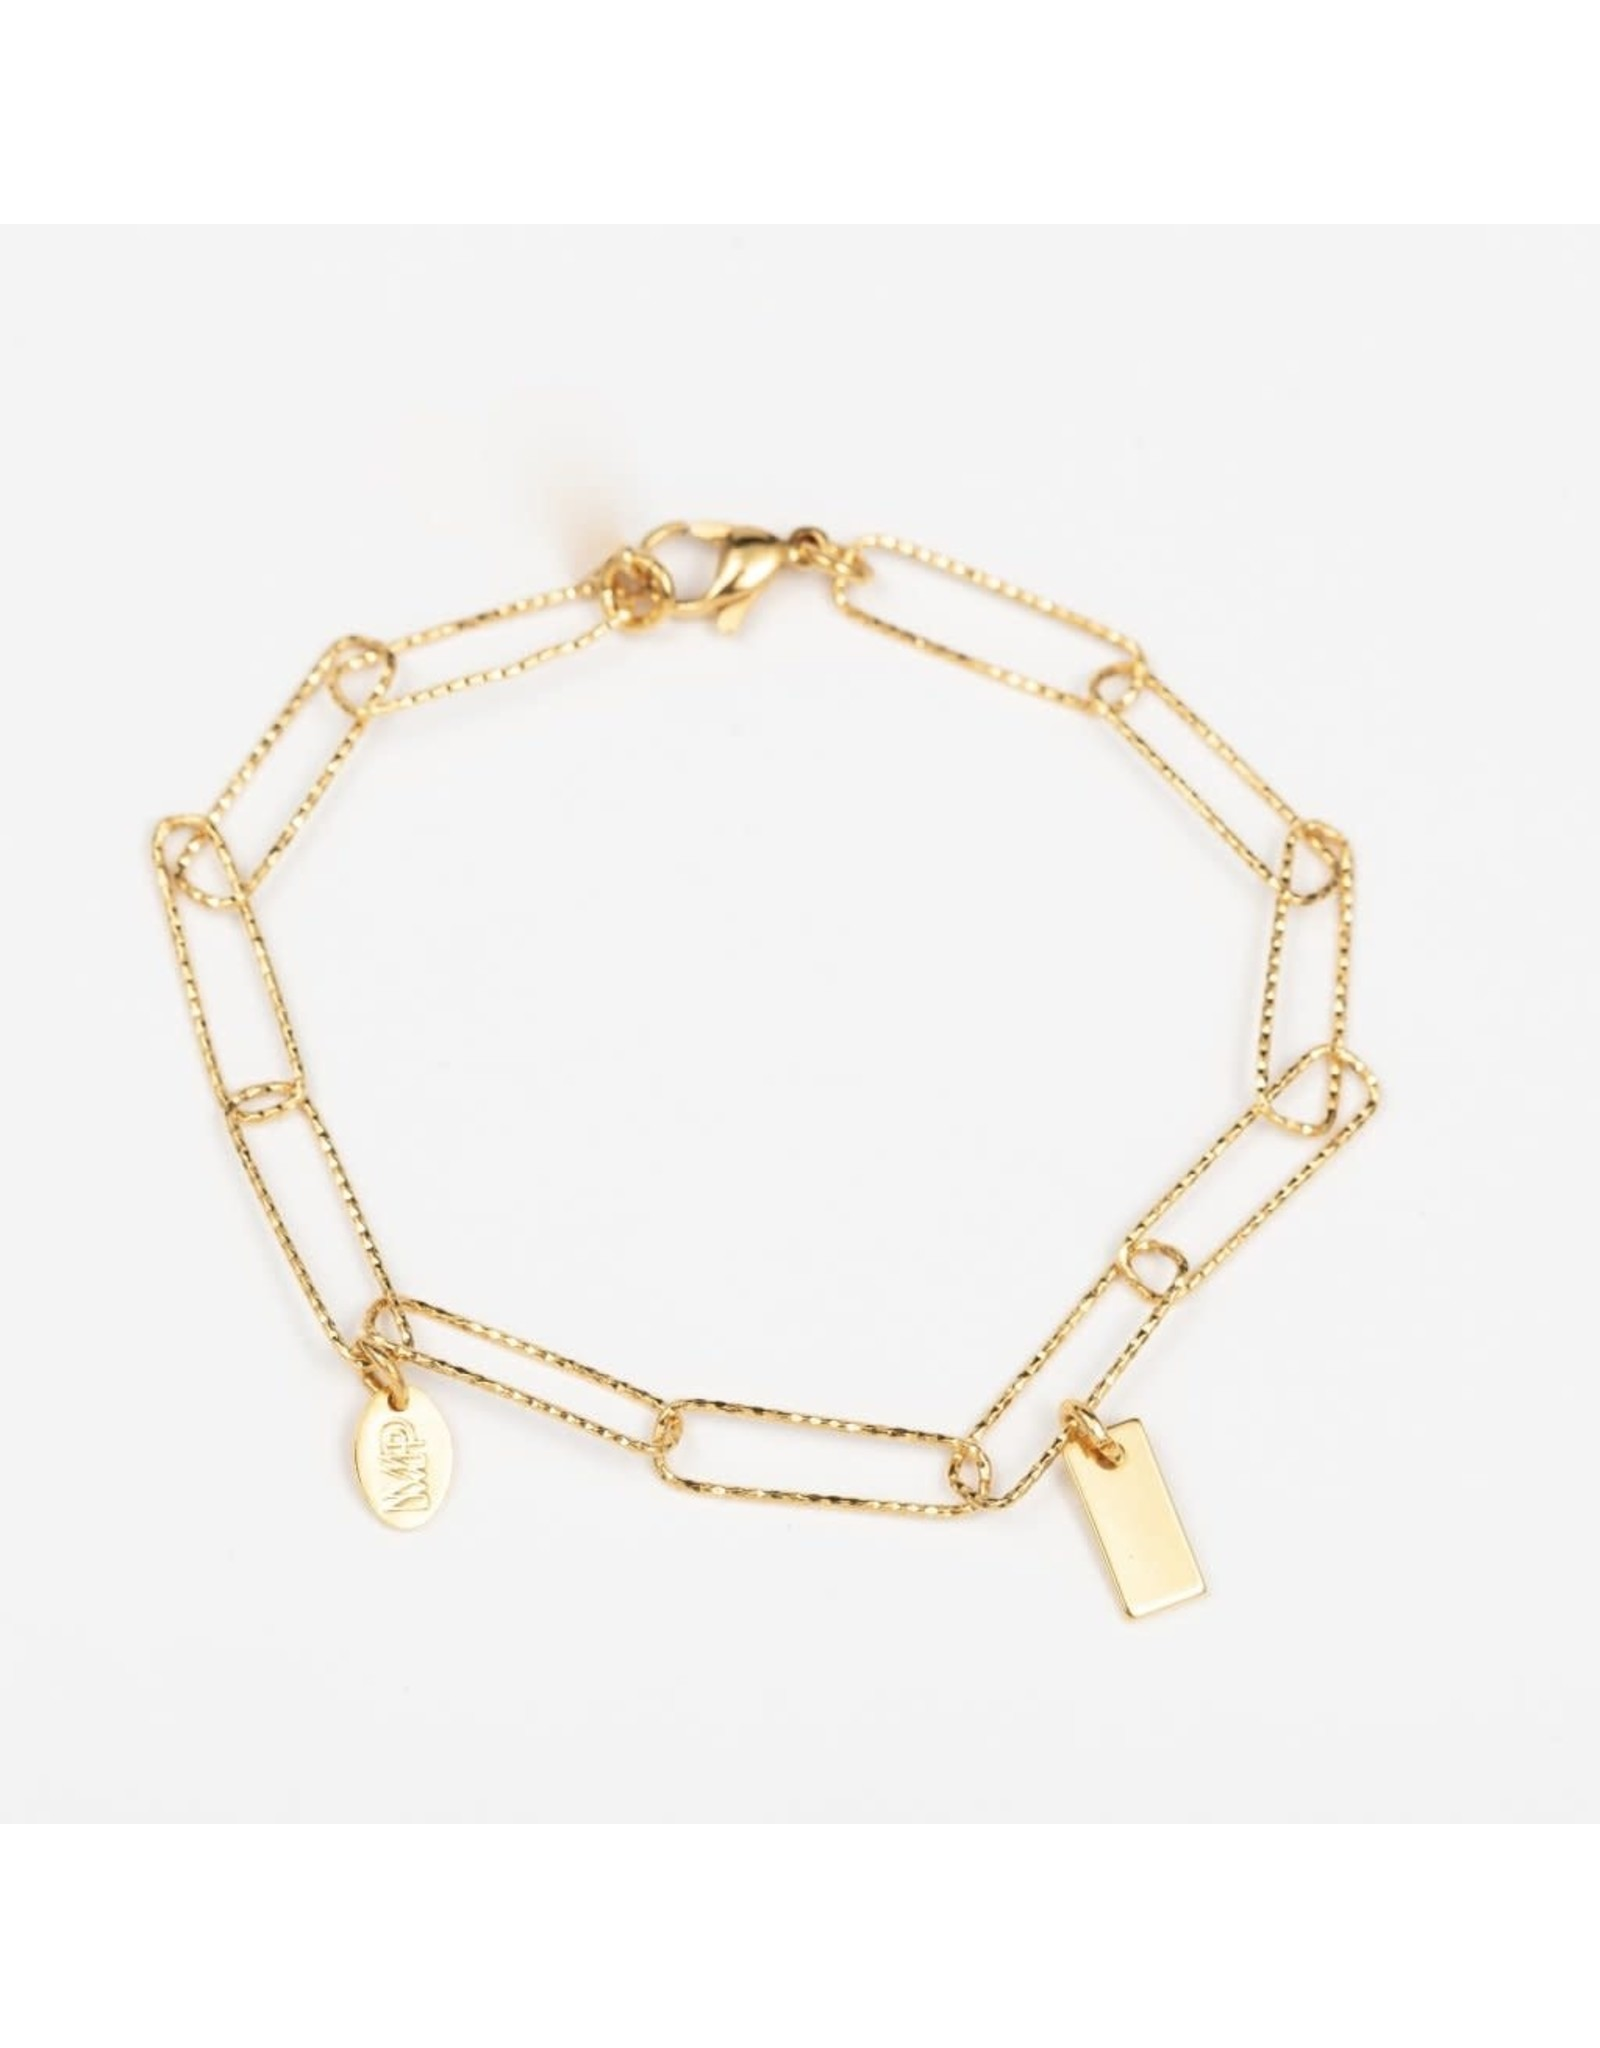 Murielle Perotti armband MP eline schakels/ goud